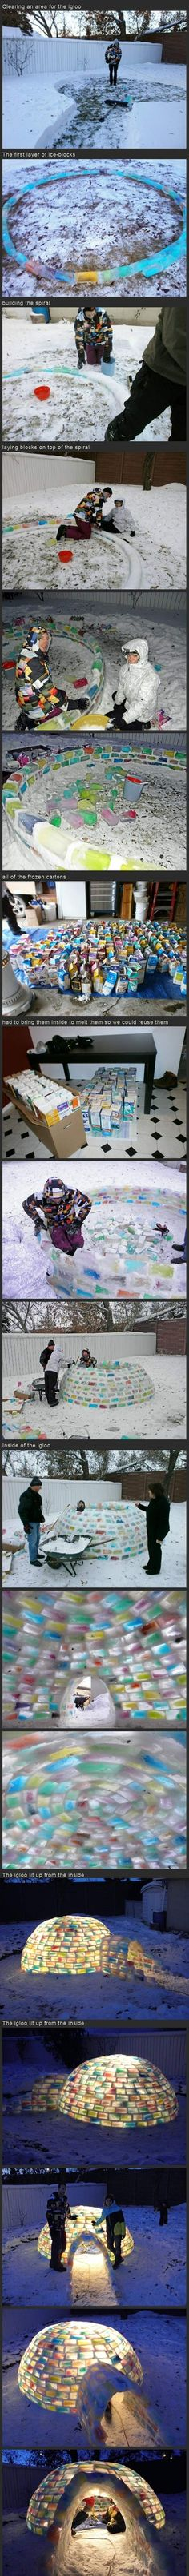 The World's Most Awesome Igloo-- my kids would LOVE this!